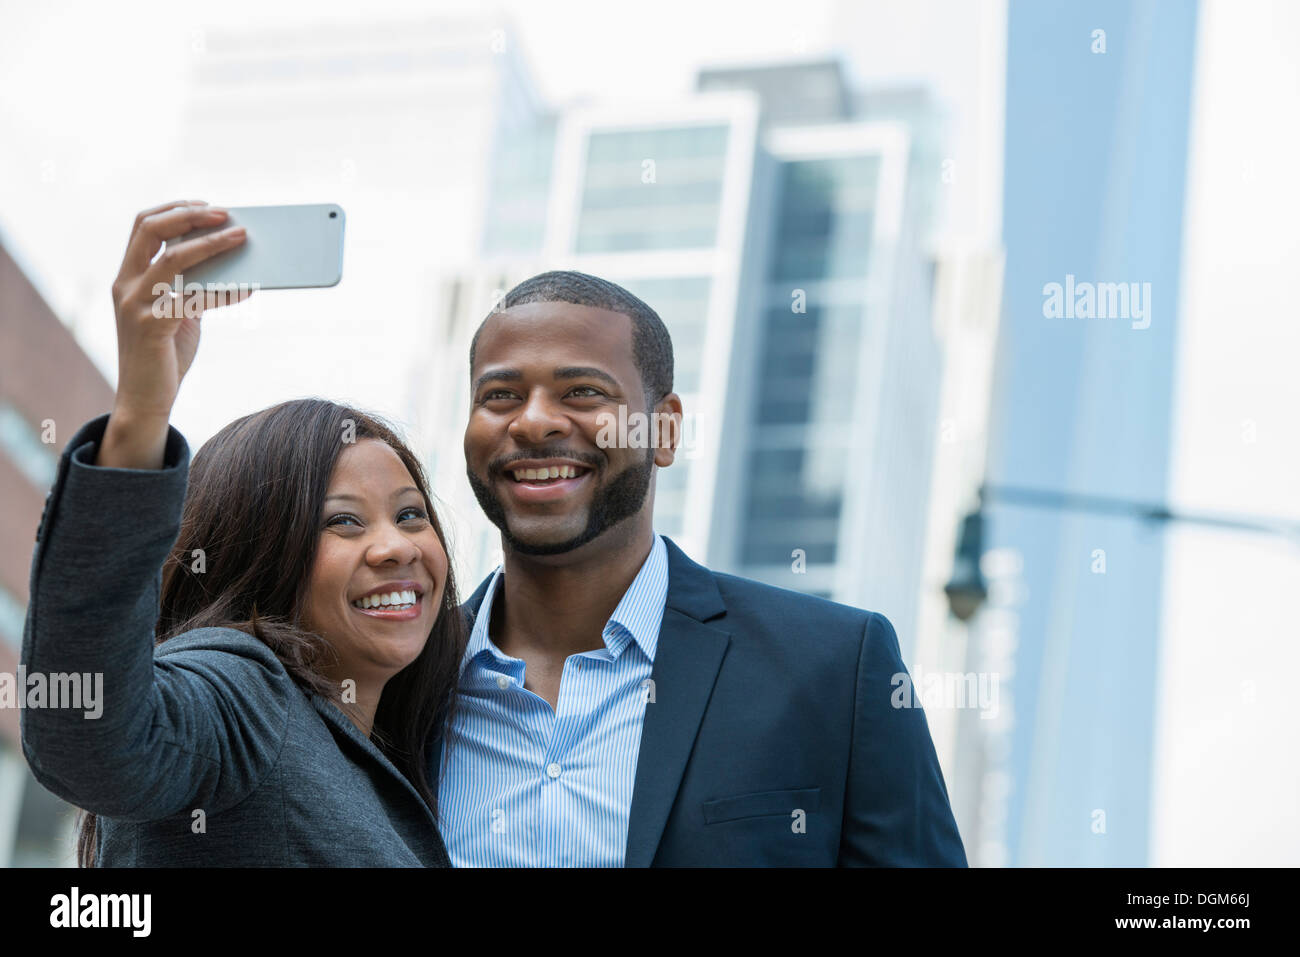 Summer. A couple taking a selfy, a woman holding out a smart phone and taking their picture. - Stock Image